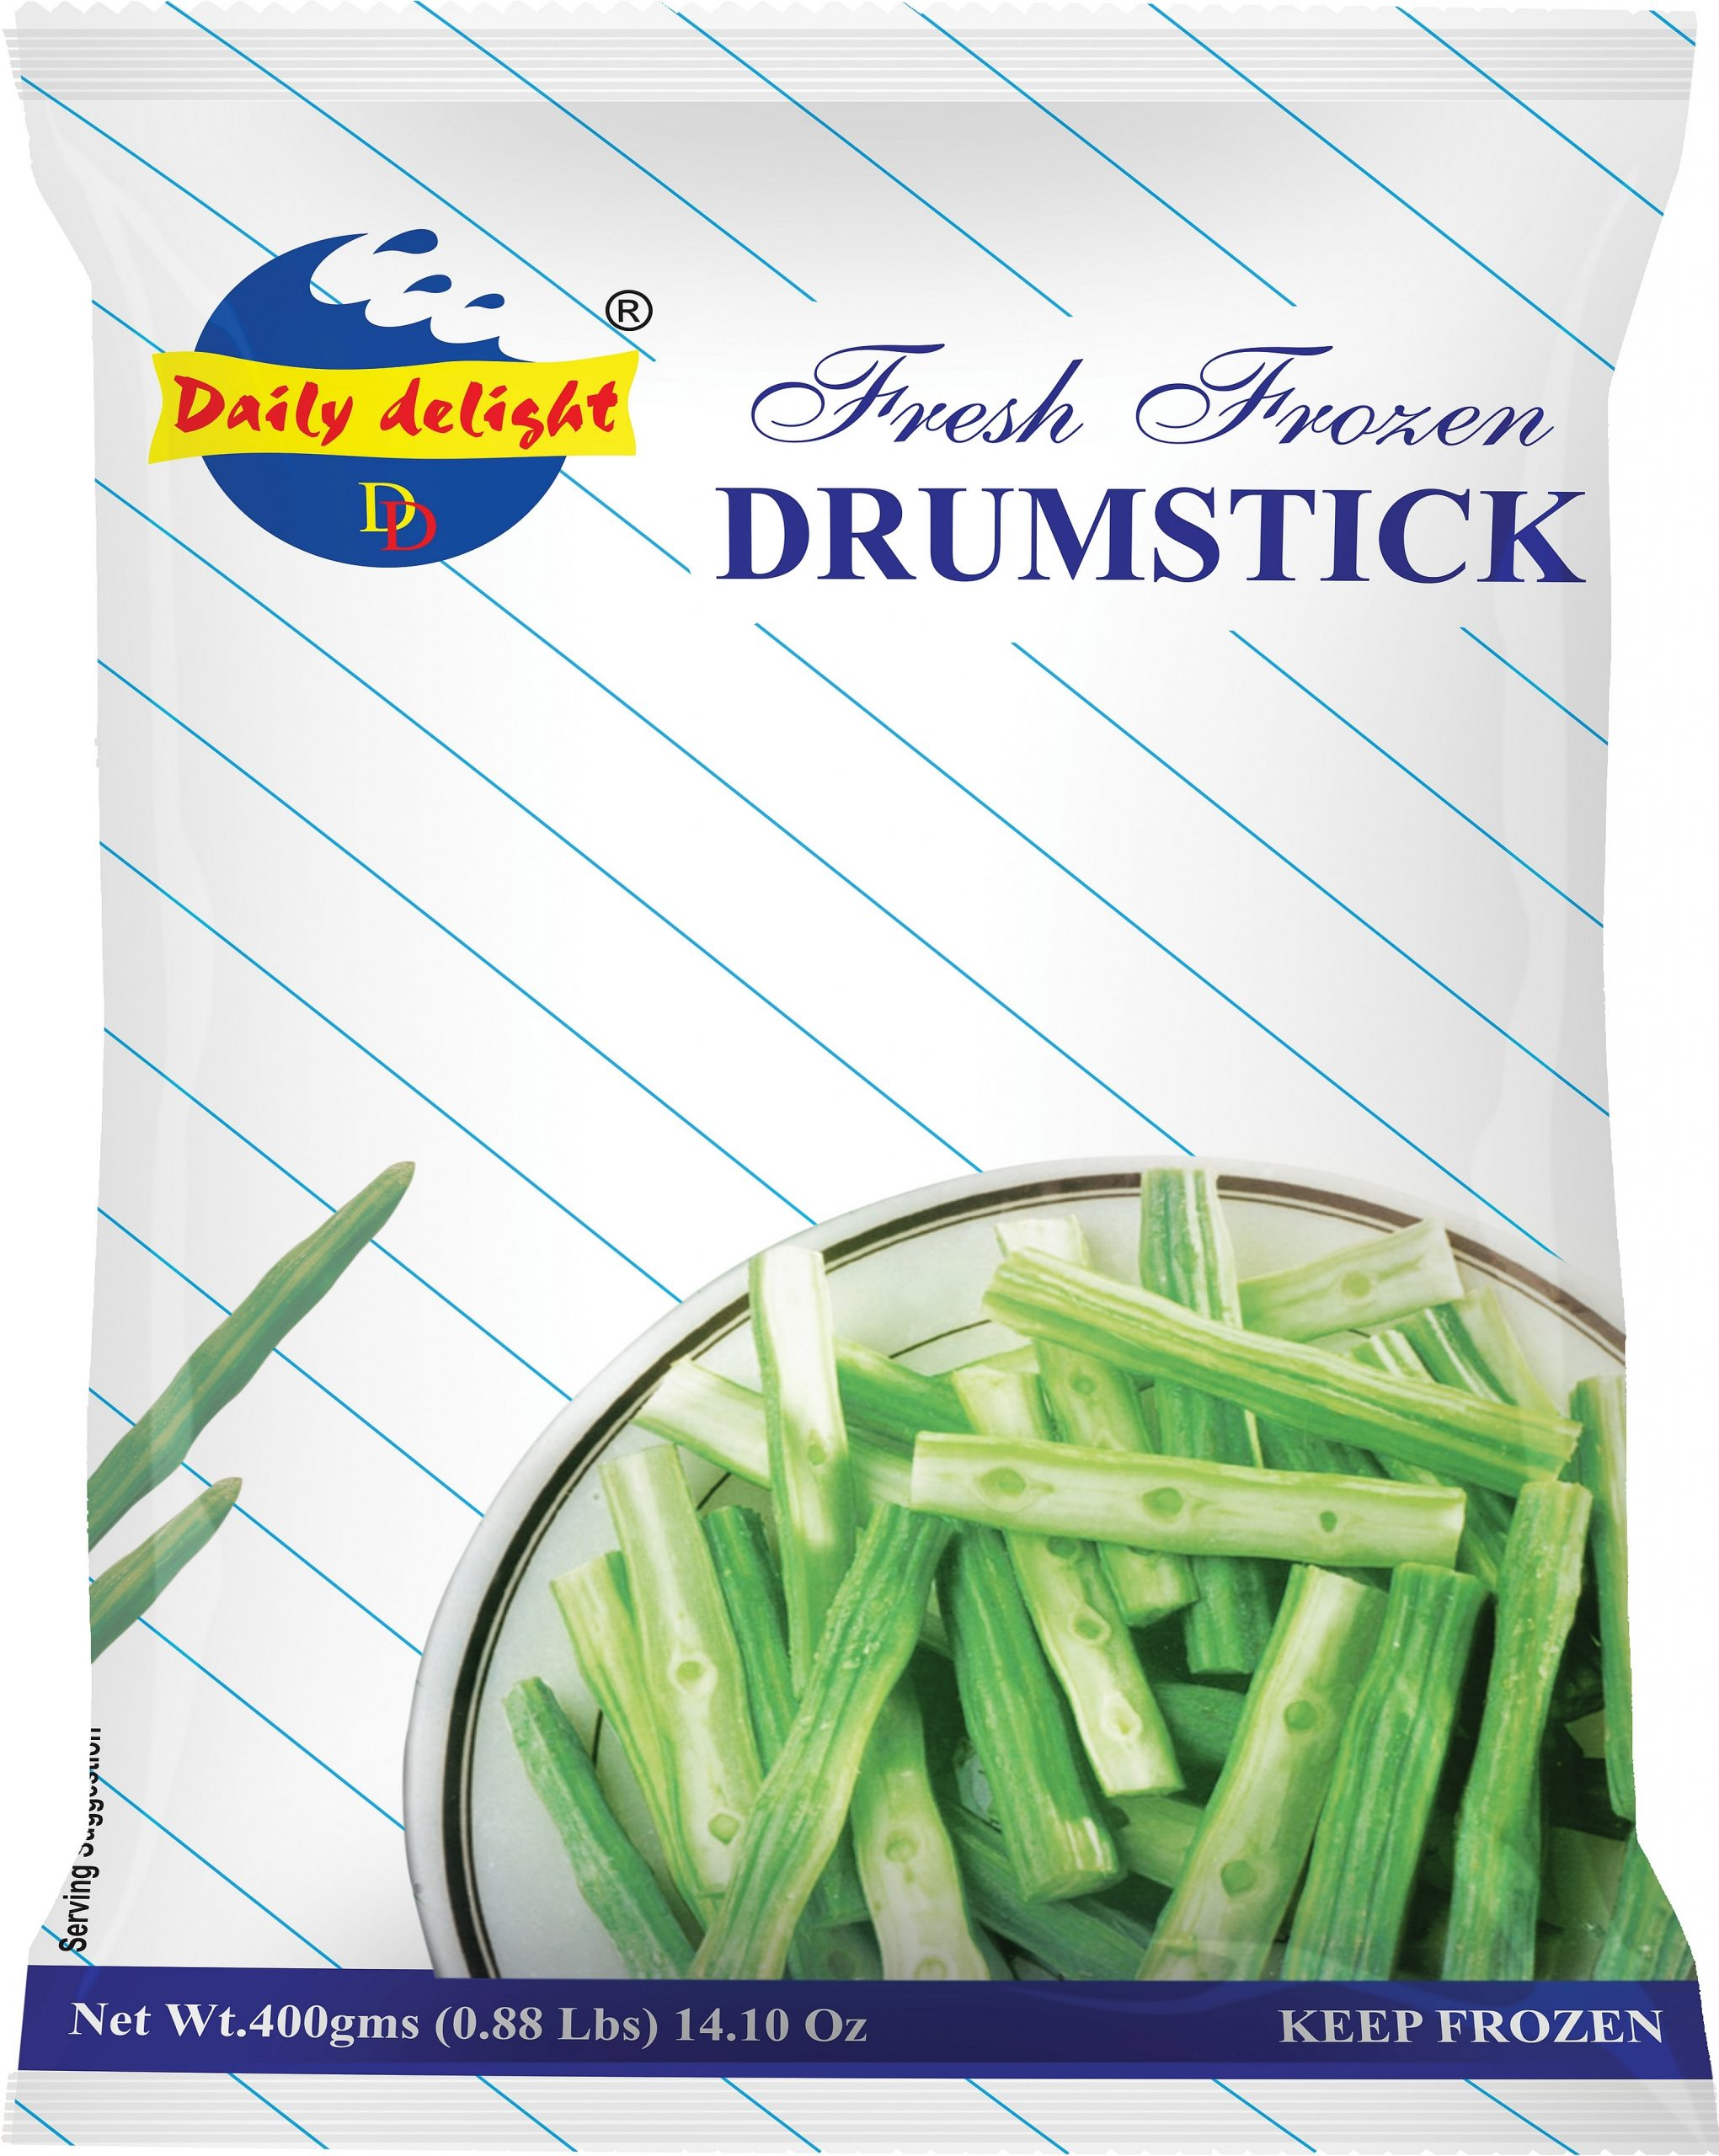 Daily Delight Drumstick